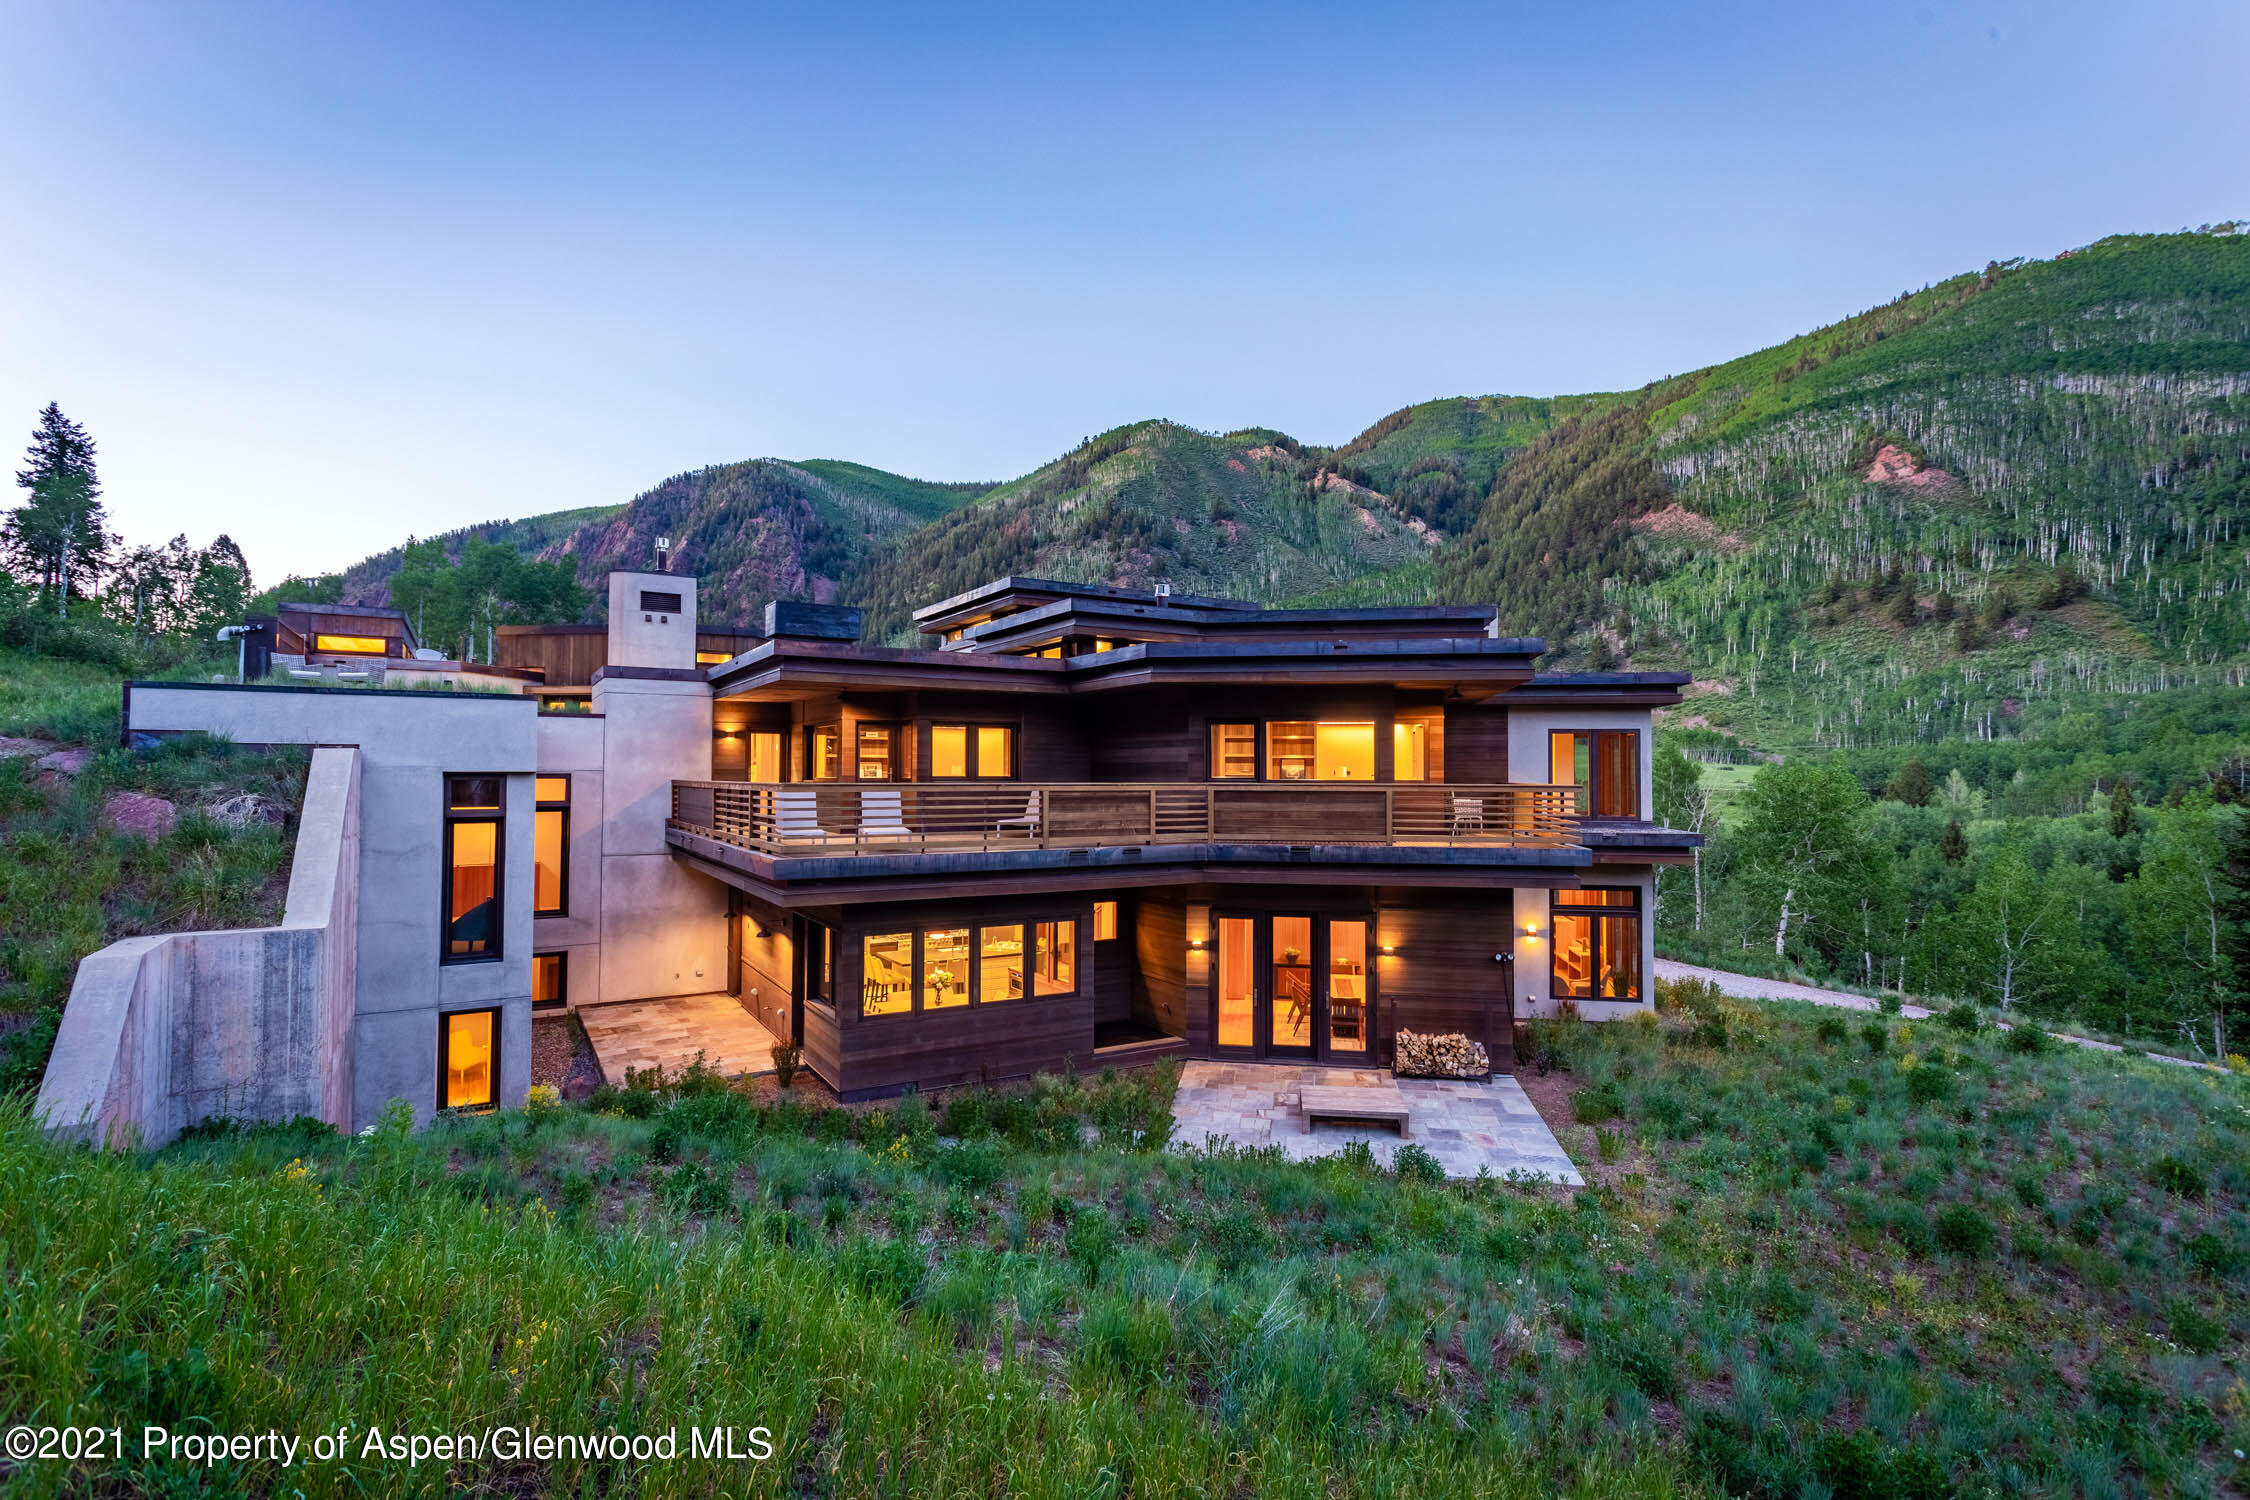 Nestled under Aspen Highlands and less than five miles from downtown Aspen, this striking architectural masterpiece is an amazing find.  Stunning views with tasteful  modern design awaits   The woodwork is meticulously crafted and into one of the most beautiful natural settings one can only dream about.   Ideally situated just above the Conundrum and Castle Creek Valleys, this tranquil oasis is surrounded by National Forest yet only minutes to downtown Aspen.